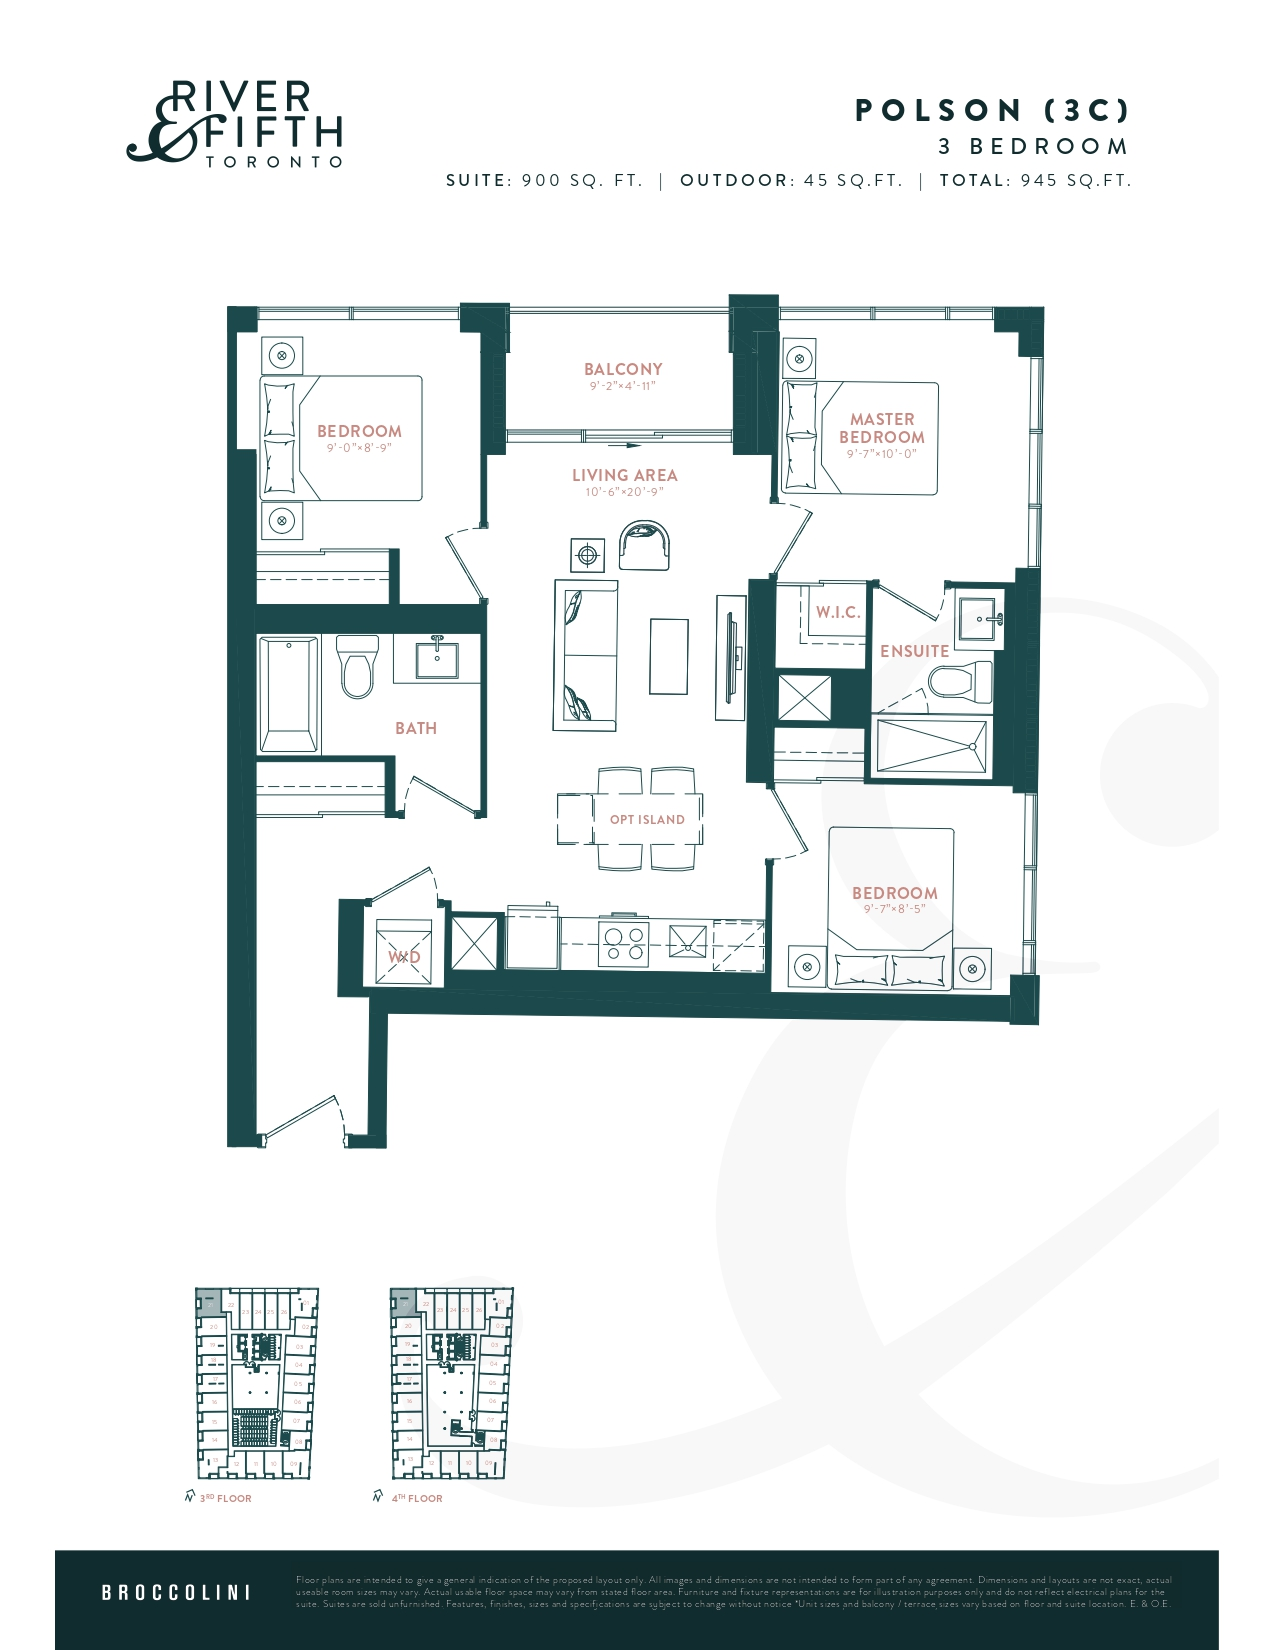 Polson (3C) Floor Plan at River & Fifth Condos - 900 sq.ft